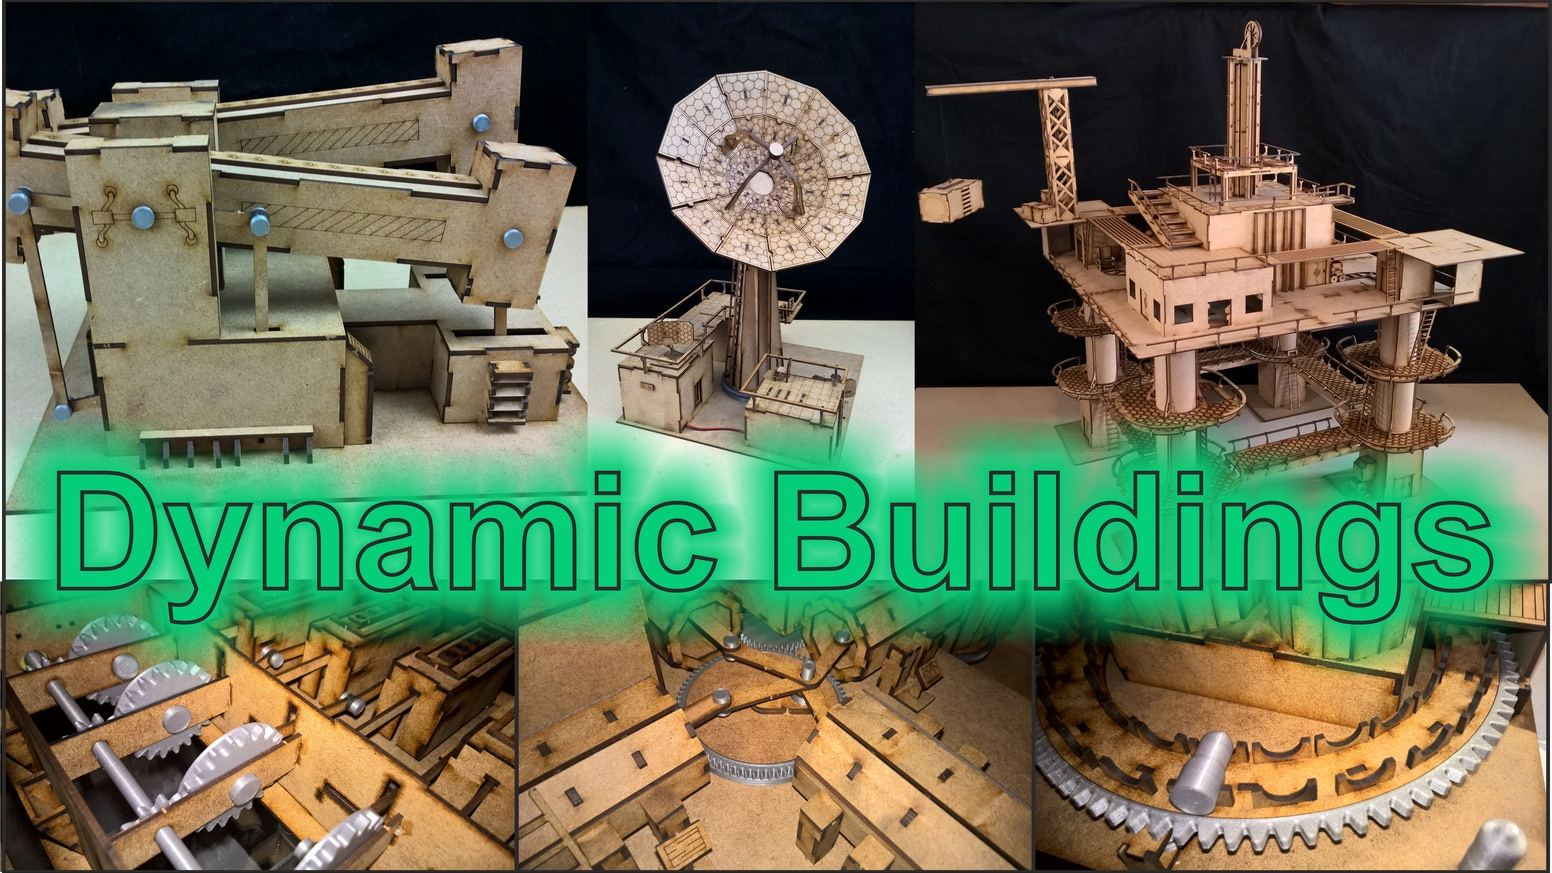 A set of 28mm wargame buildings all featuring movement, battery powered programable wargame buildings.